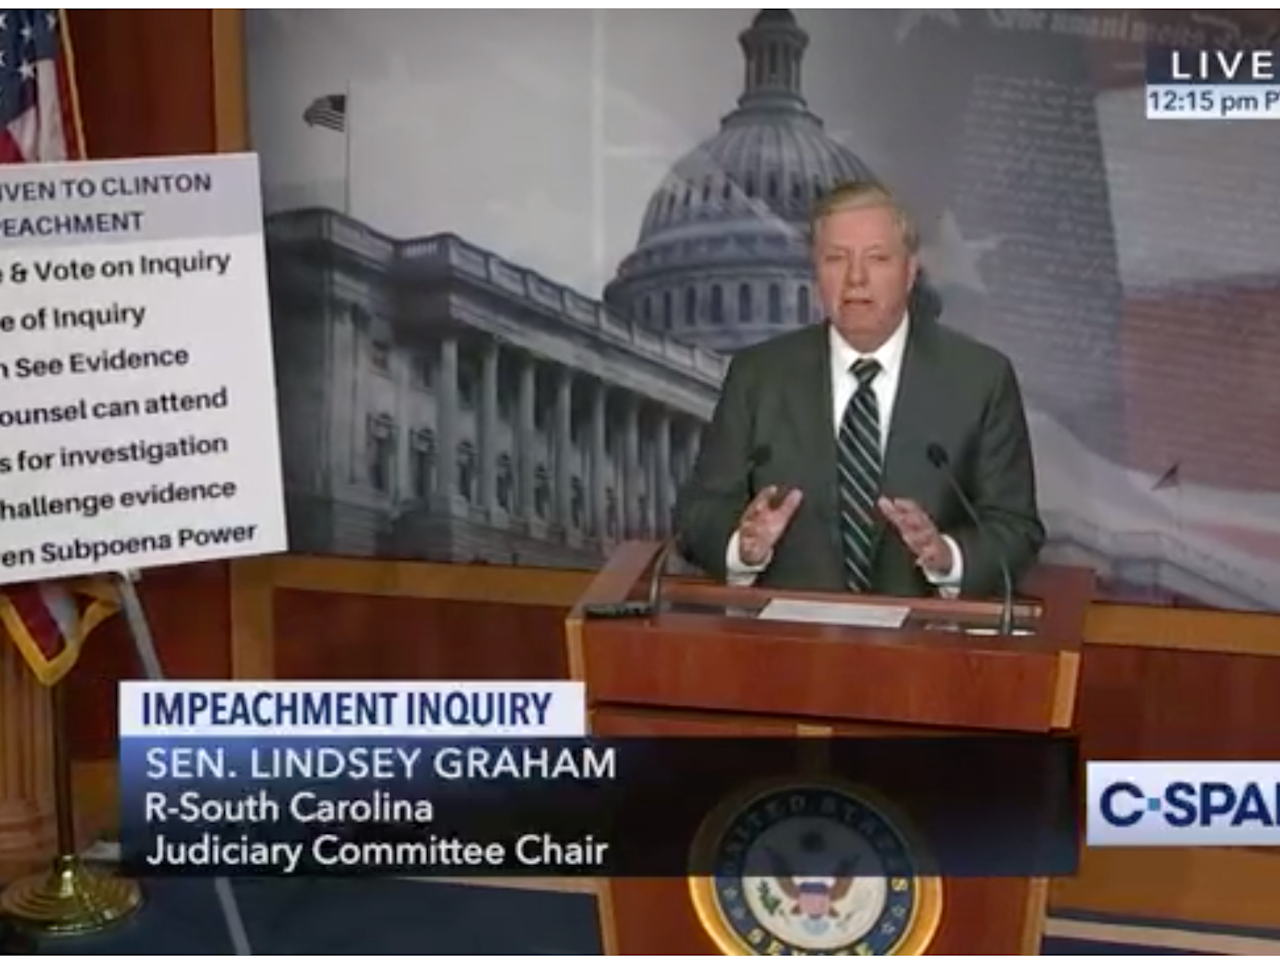 Lindsey Graham introduced a resolution denouncing the House's impeachment investigation